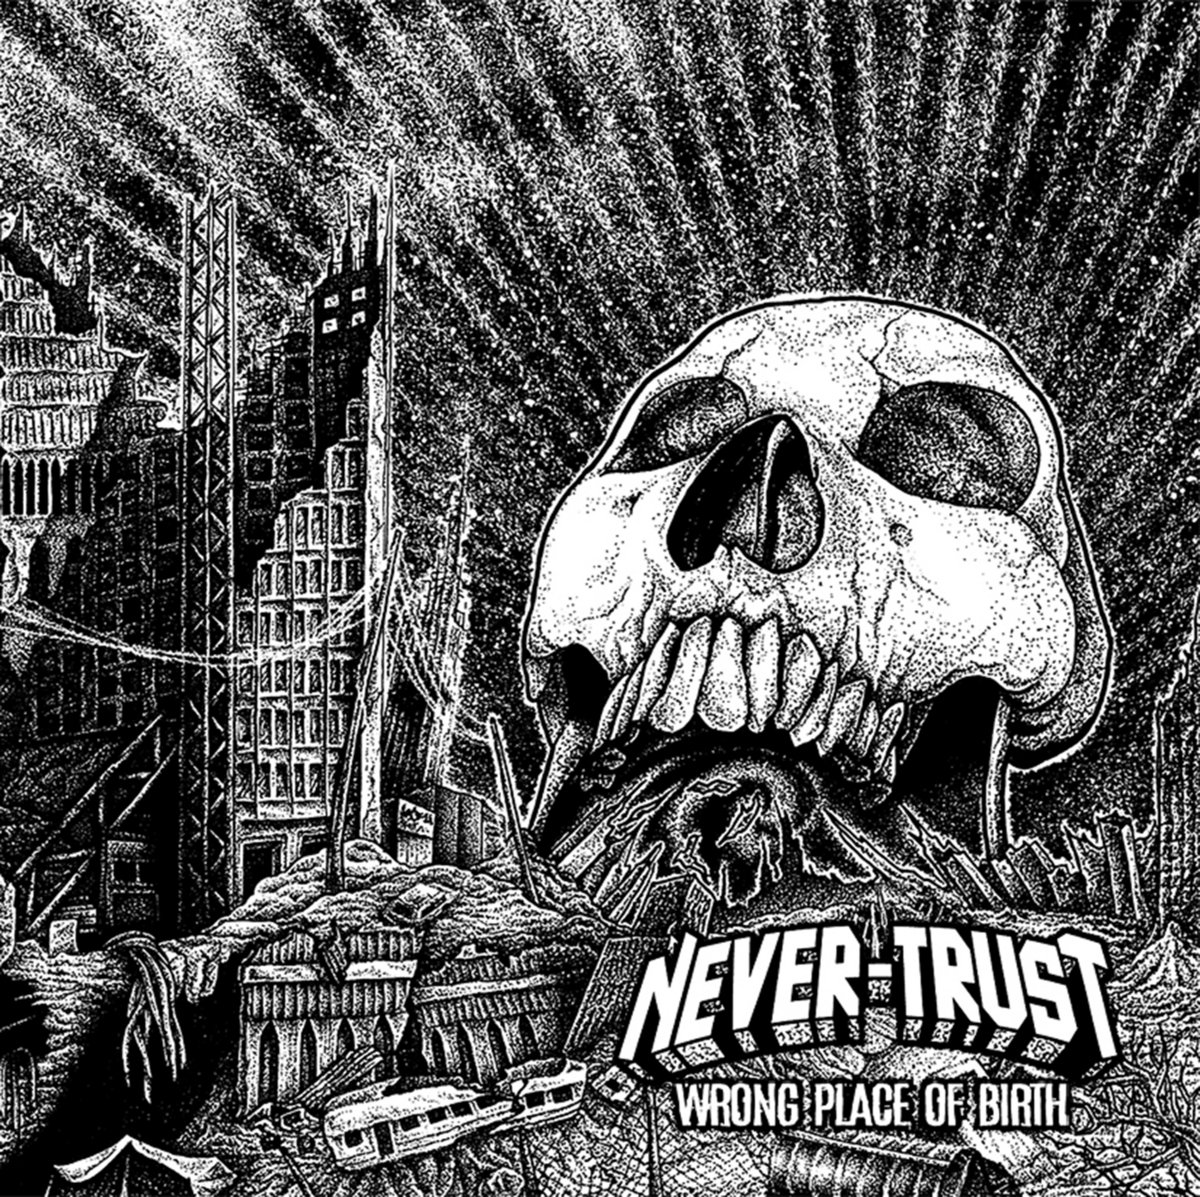 Never Trust - Wrong place of birth MCD